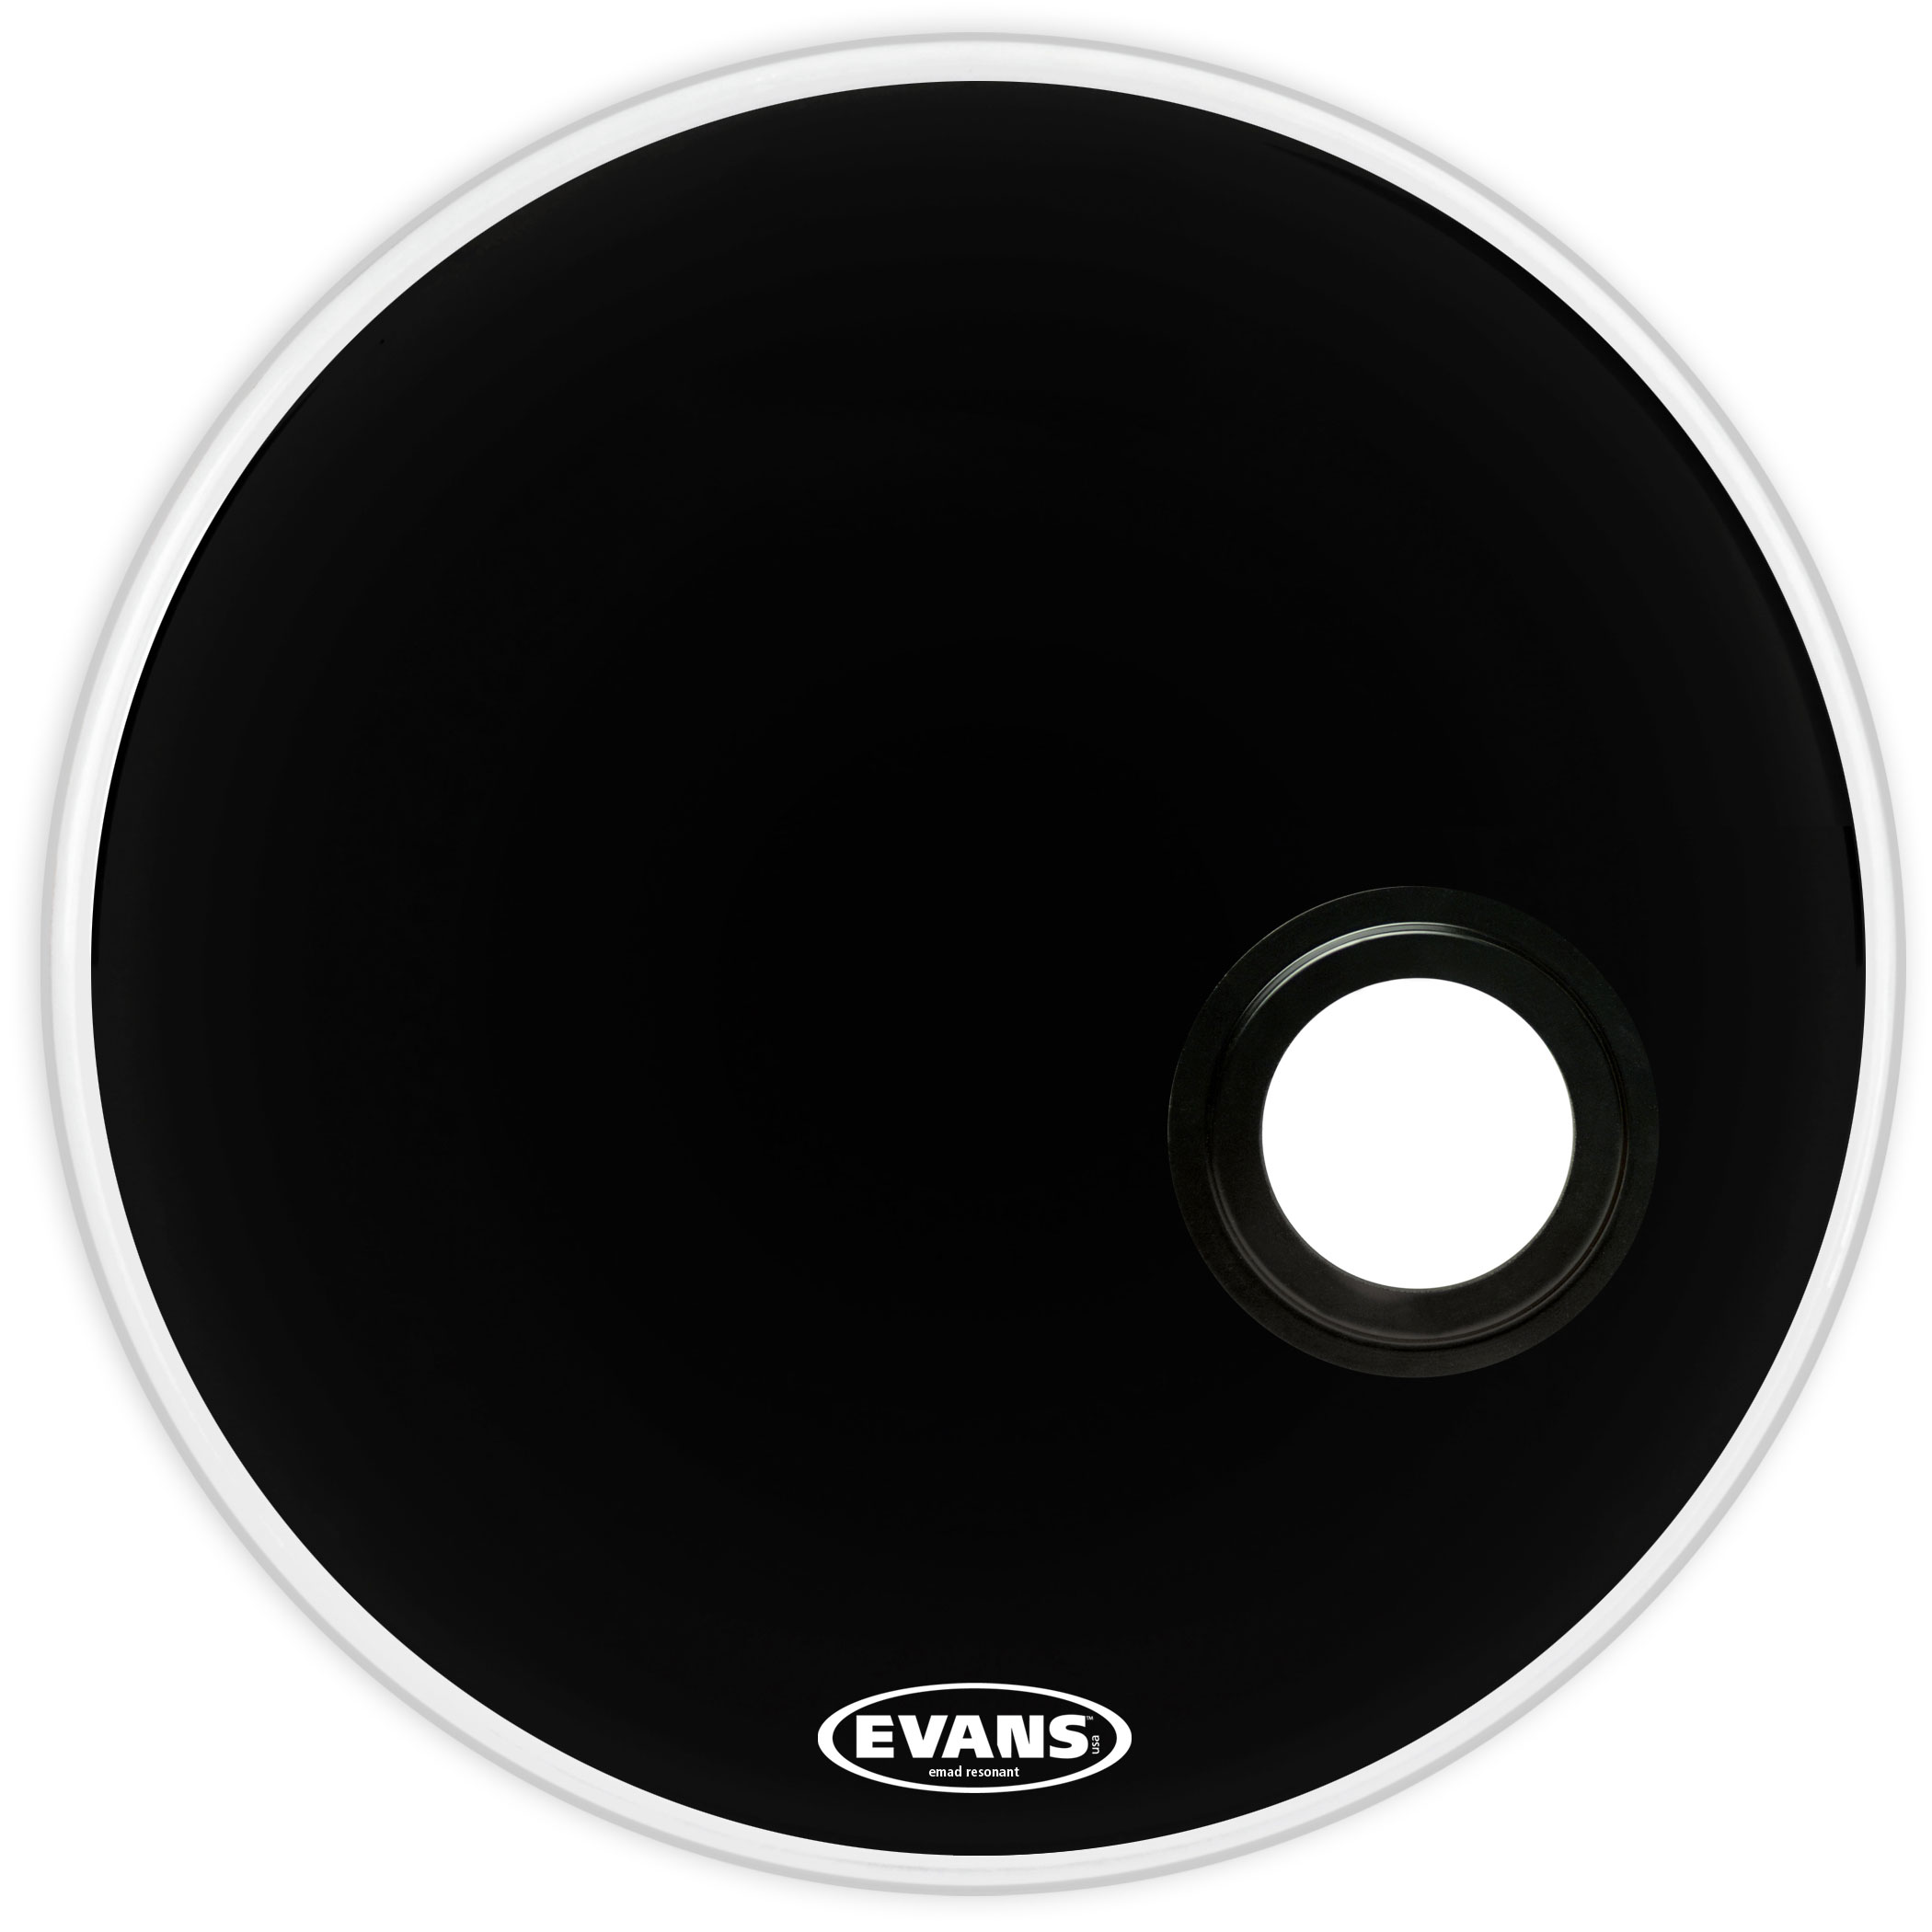 evans bd20remad 20 inch emad resonant black bass drum head 689788497273 ebay. Black Bedroom Furniture Sets. Home Design Ideas